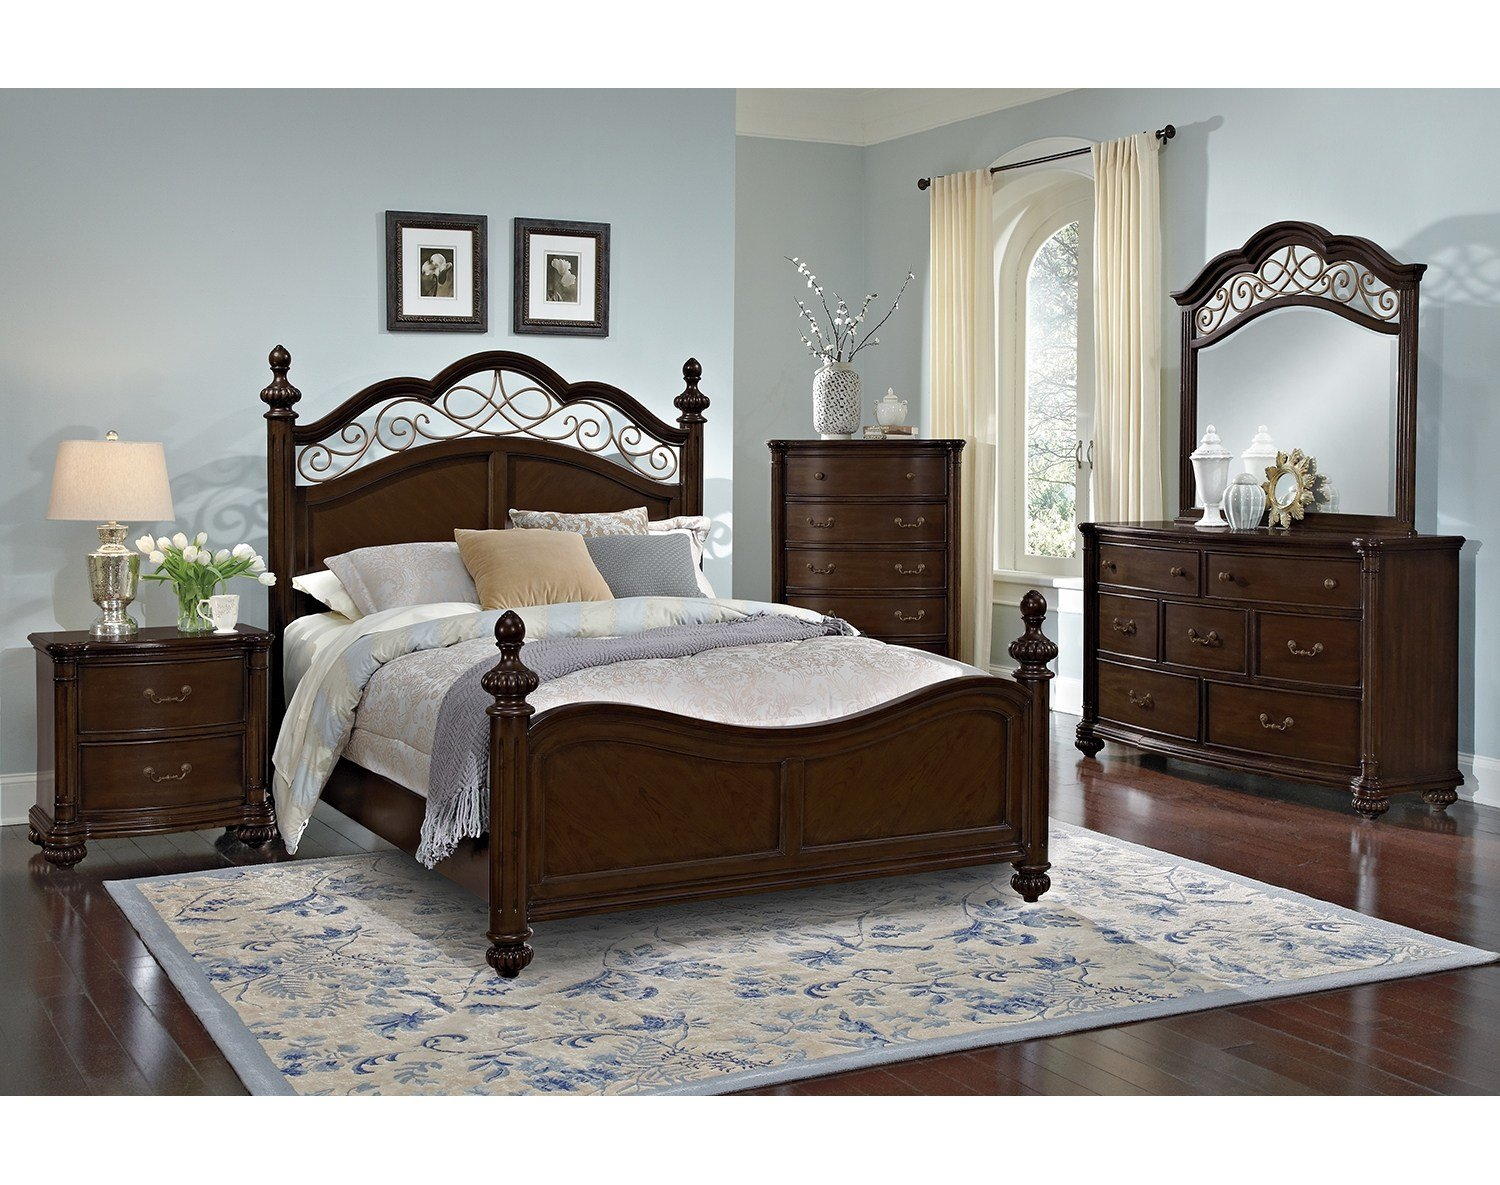 Best Value City Furniture Bedroom Sets 28 Images Value City With Pictures